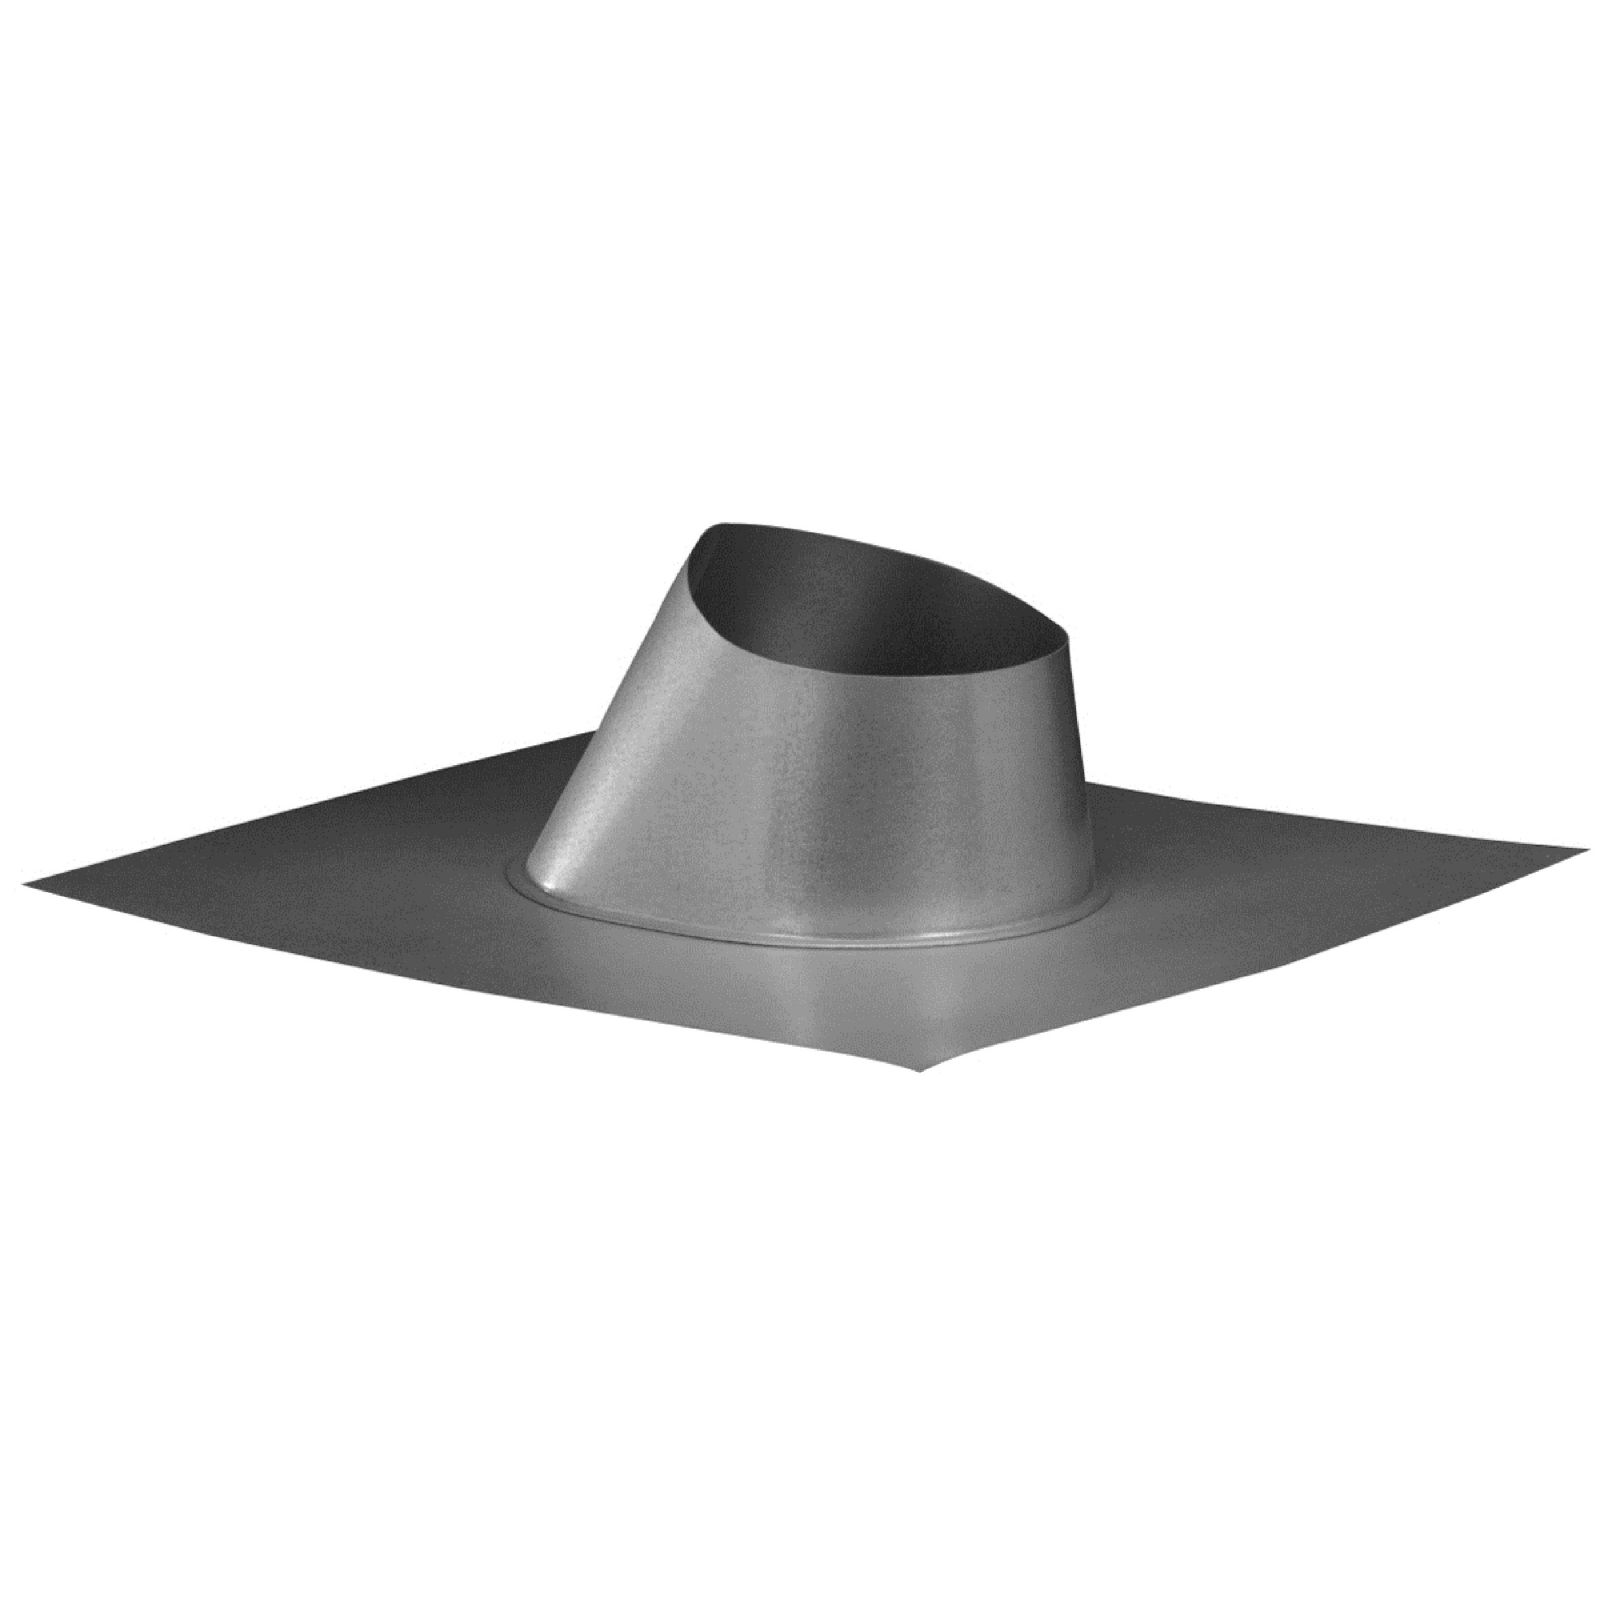 Hart & Cooley 016217 - Adjustable Roof Flashing (0-6/12 Pitch), 5""